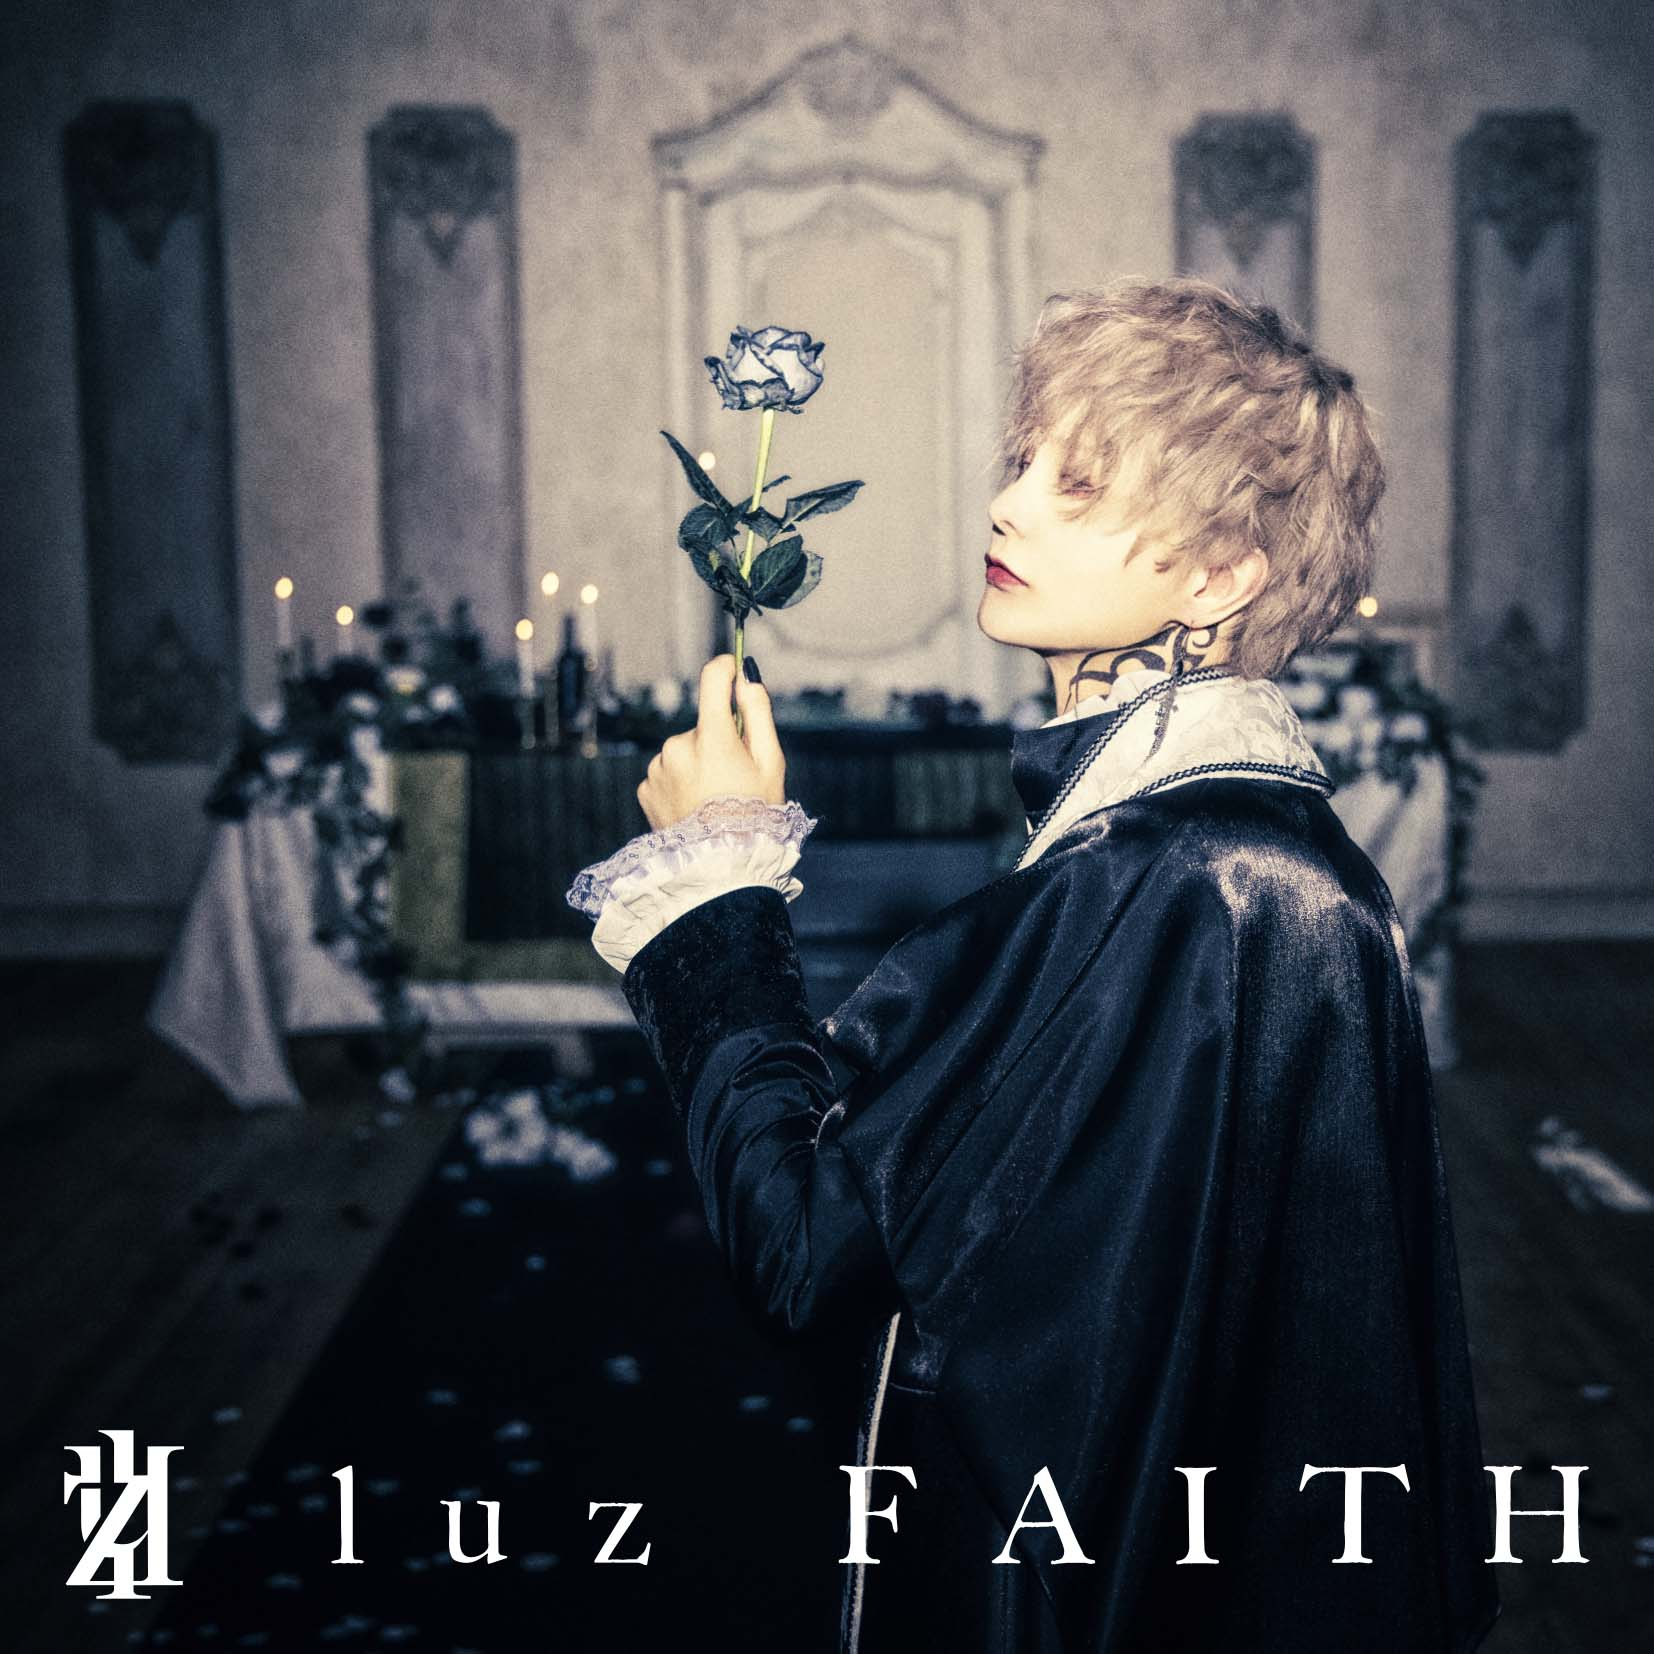 """luz """"FAITH"""" Normal Edition(CD Only) Release in October27th 2021 No.1"""